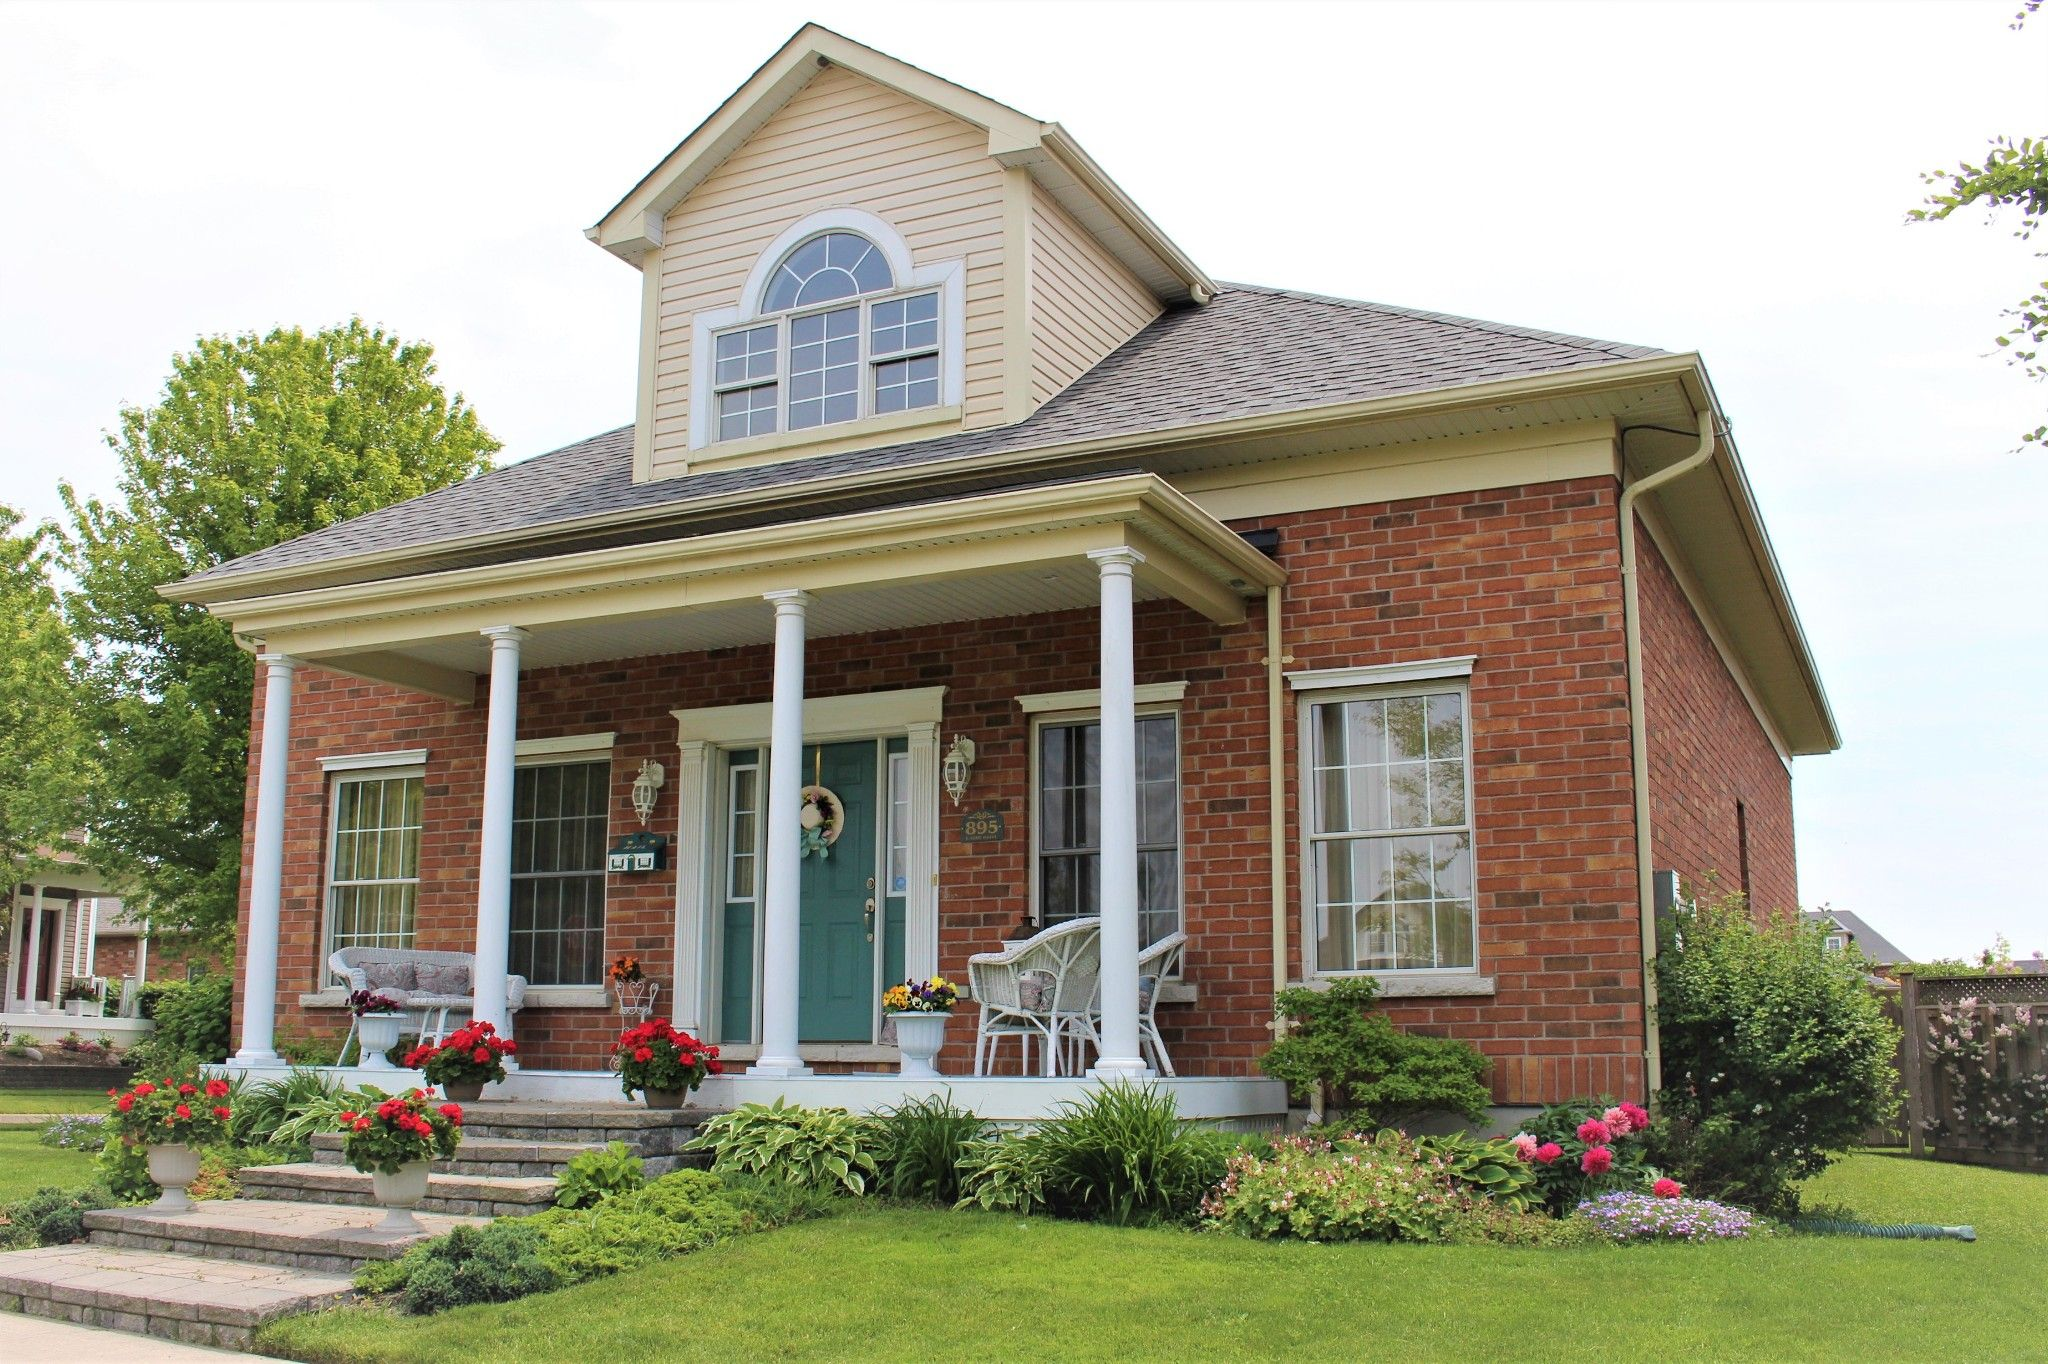 Main Photo: 895 Caddy Drive in Cobourg: House for sale : MLS®# 202910